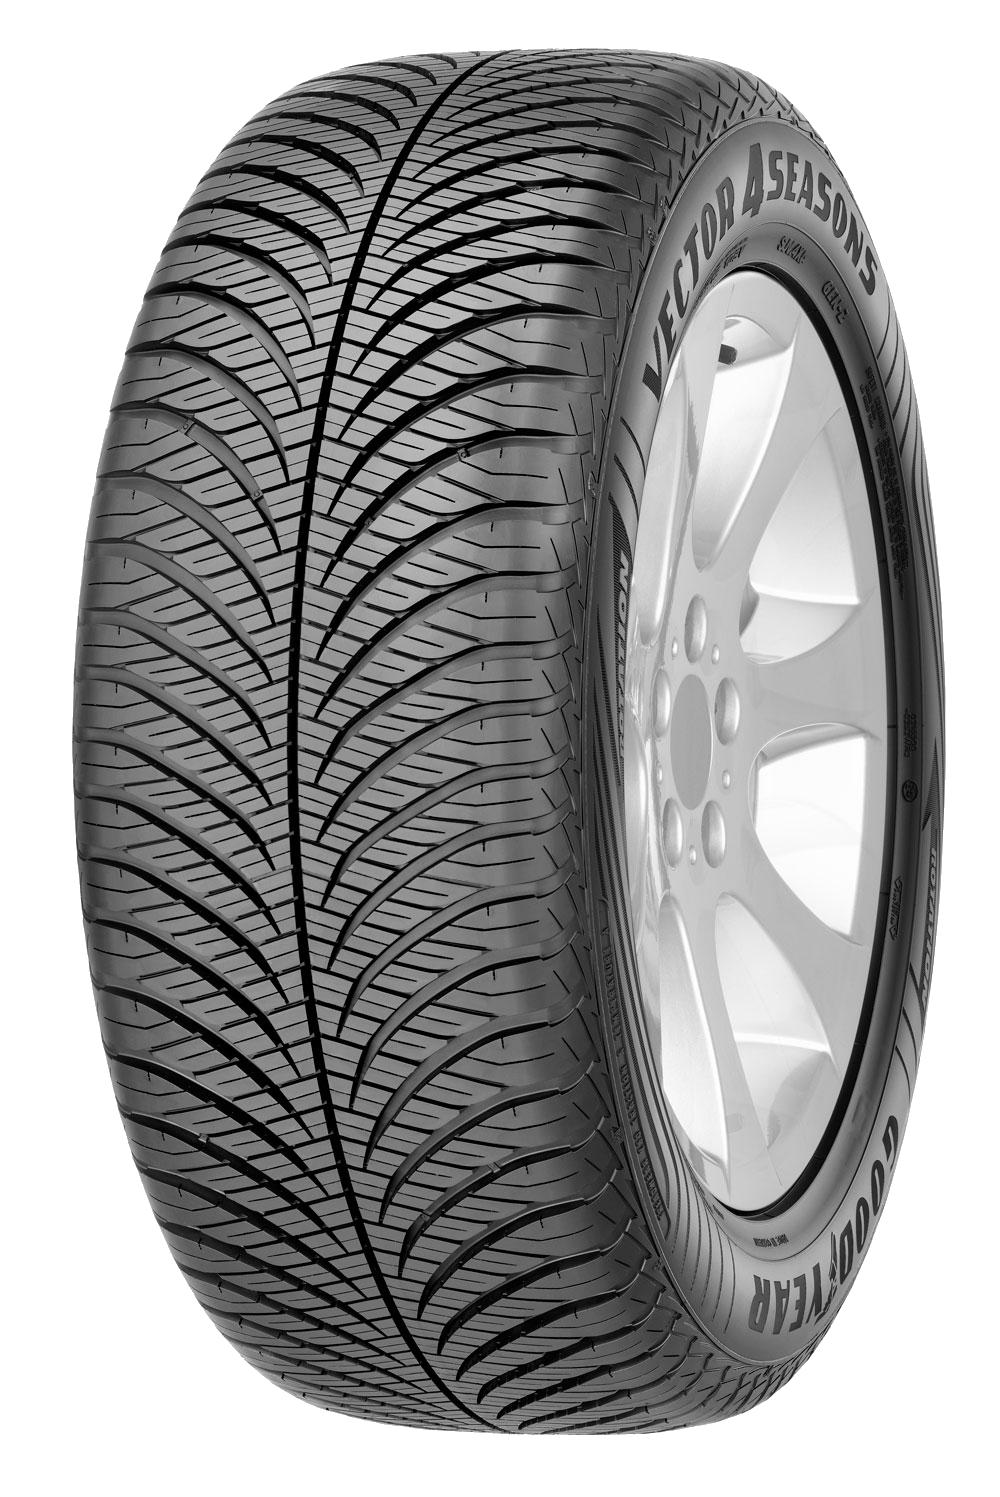 mobiliteitsgarantie 66 d 185/60R14 82H Voor o.a. Mazda 2, Seat Ibiza, VW Polo 67 d 165/70R14 81T Voor o.a. iat Panda, Opel Agila, Skoda abia 67 d 195/65R15 91H Voor o.